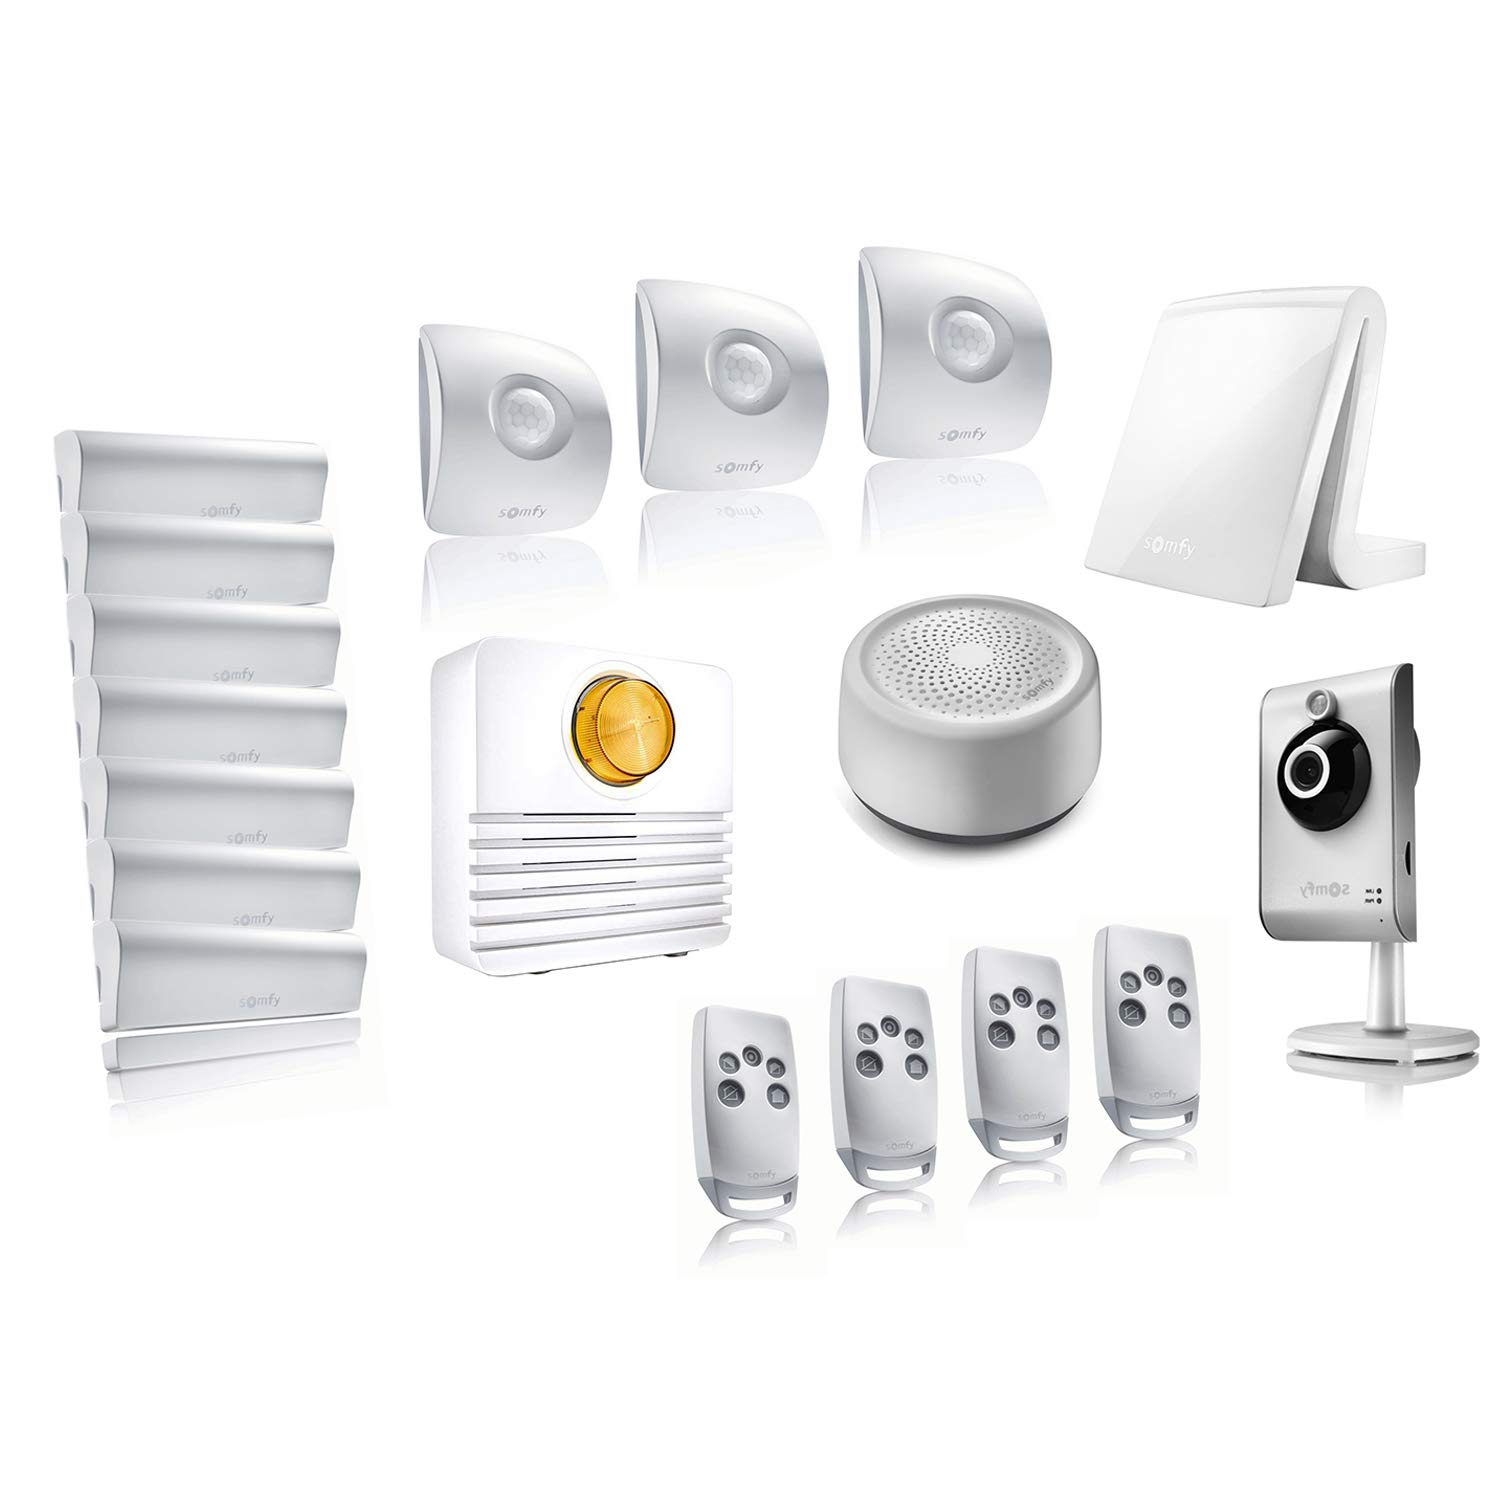 Somfy Tahoma - Video Kit 4 - Pack Alarma conectada Somfy ...